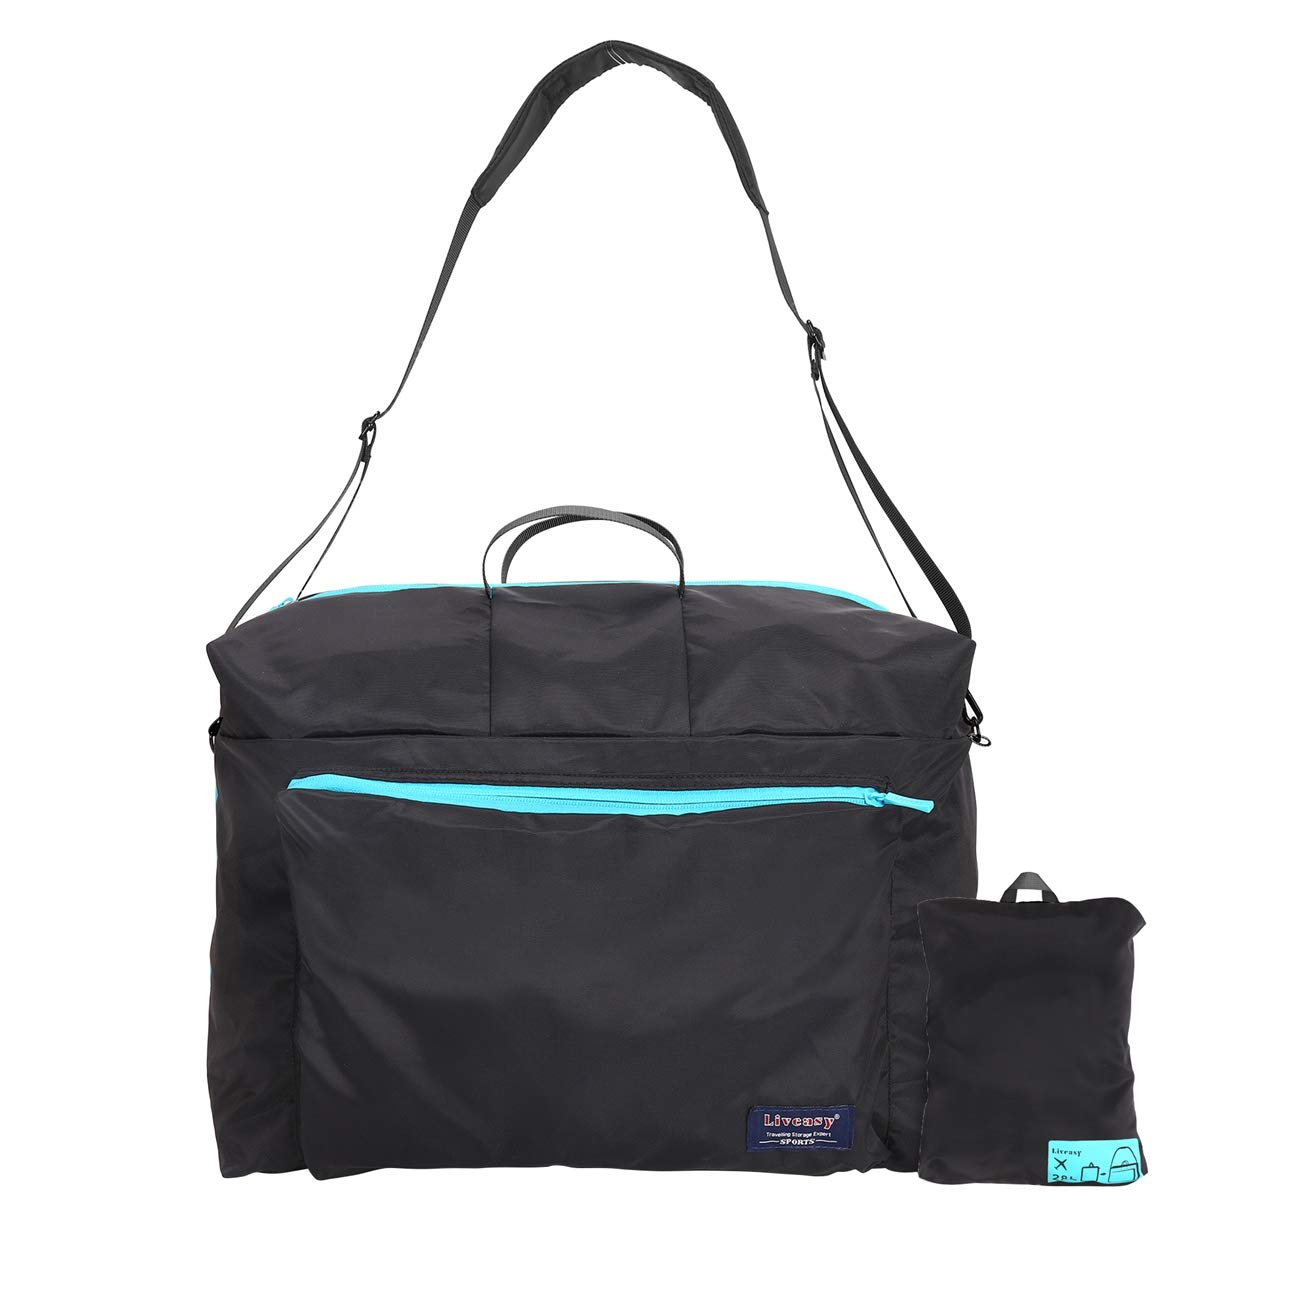 LIVEASY Travel Duffel Bag Weekend Bag Foldable Packable Bag for Luggage Waterproot and Lightweight Bag Gym Bag